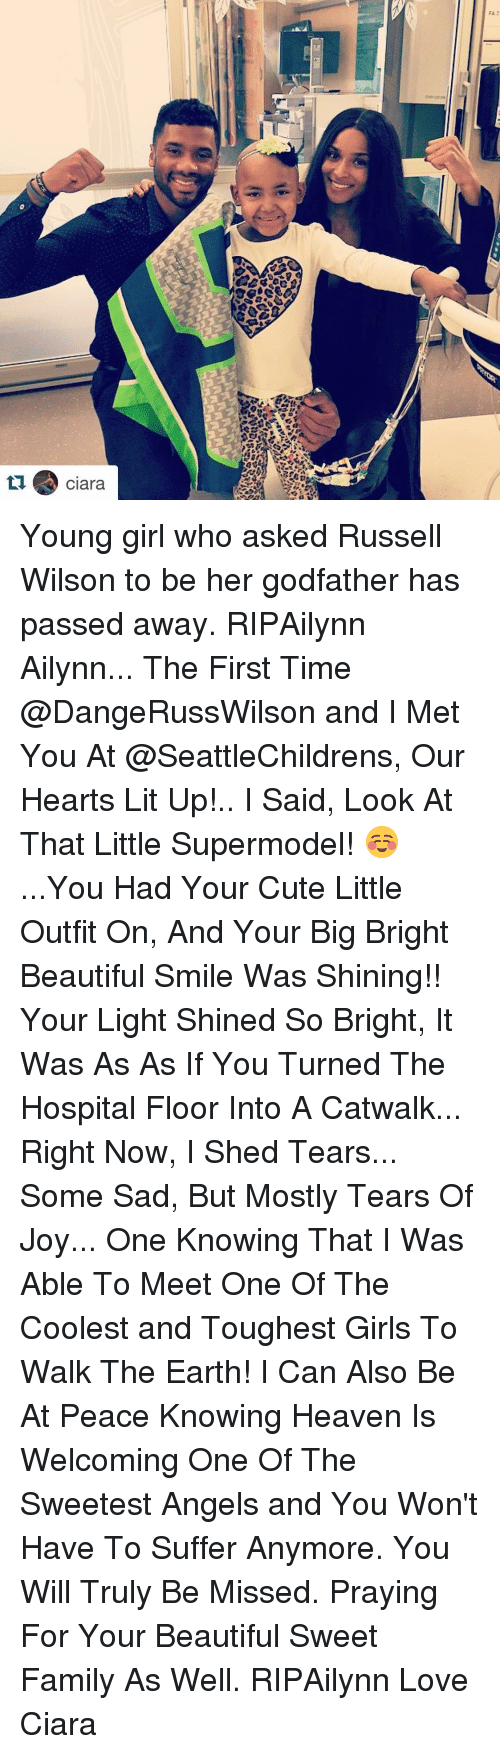 Russell Wilson: FA7  FX7  LI . Clara Young girl who asked Russell Wilson to be her godfather has passed away. RIPAilynn ・・・ Ailynn... The First Time @DangeRussWilson and I Met You At @SeattleChildrens, Our Hearts Lit Up!.. I Said, Look At That Little Supermodel! ☺️...You Had Your Cute Little Outfit On, And Your Big Bright Beautiful Smile Was Shining!! Your Light Shined So Bright, It Was As As If You Turned The Hospital Floor Into A Catwalk... Right Now, I Shed Tears... Some Sad, But Mostly Tears Of Joy... One Knowing That I Was Able To Meet One Of The Coolest and Toughest Girls To Walk The Earth! I Can Also Be At Peace Knowing Heaven Is Welcoming One Of The Sweetest Angels and You Won't Have To Suffer Anymore. You Will Truly Be Missed. Praying For Your Beautiful Sweet Family As Well. RIPAilynn Love Ciara